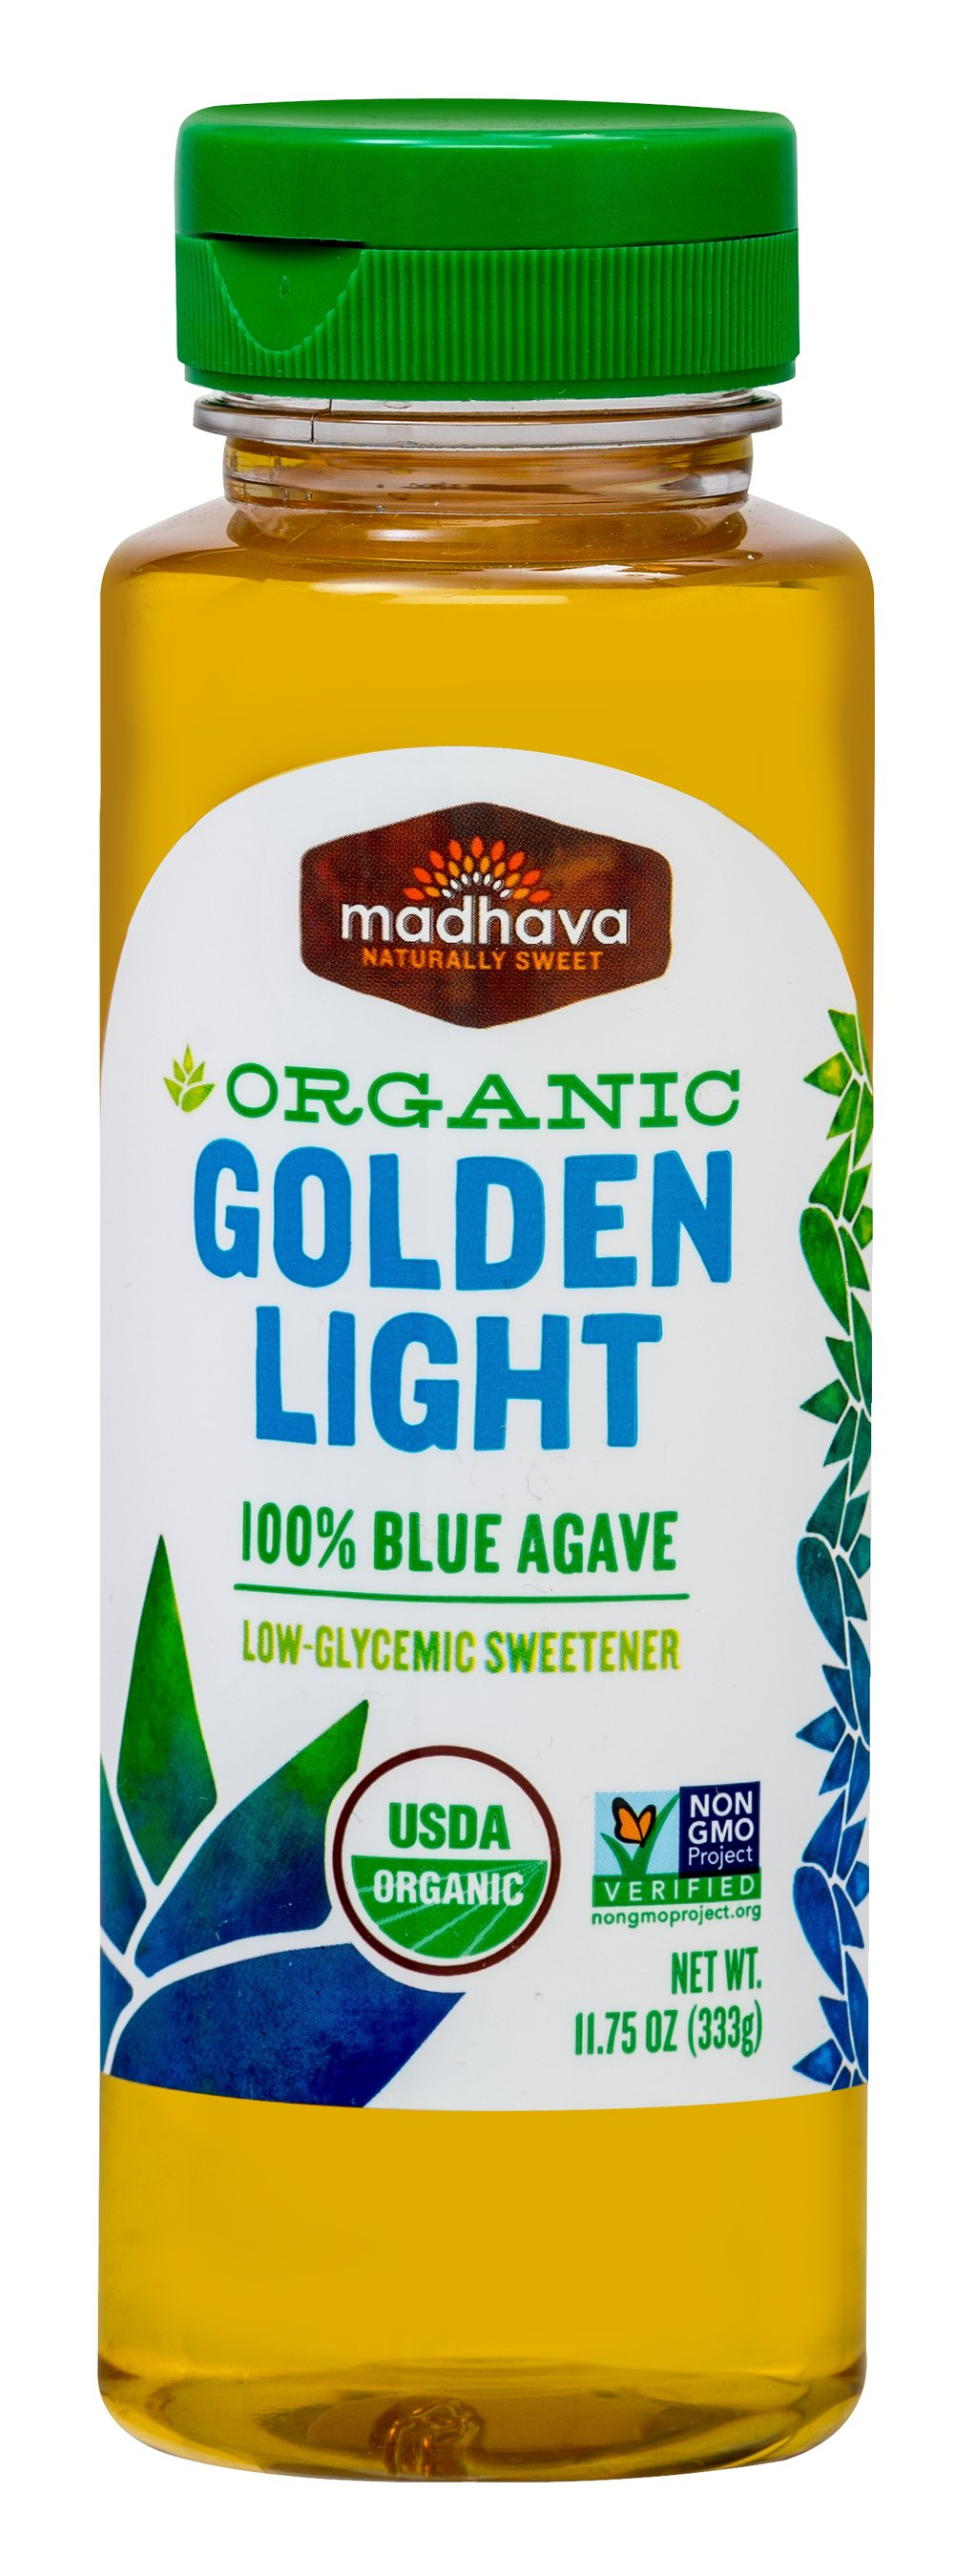 Organic Golden Light Blue Agave  11.75 oz Bottle